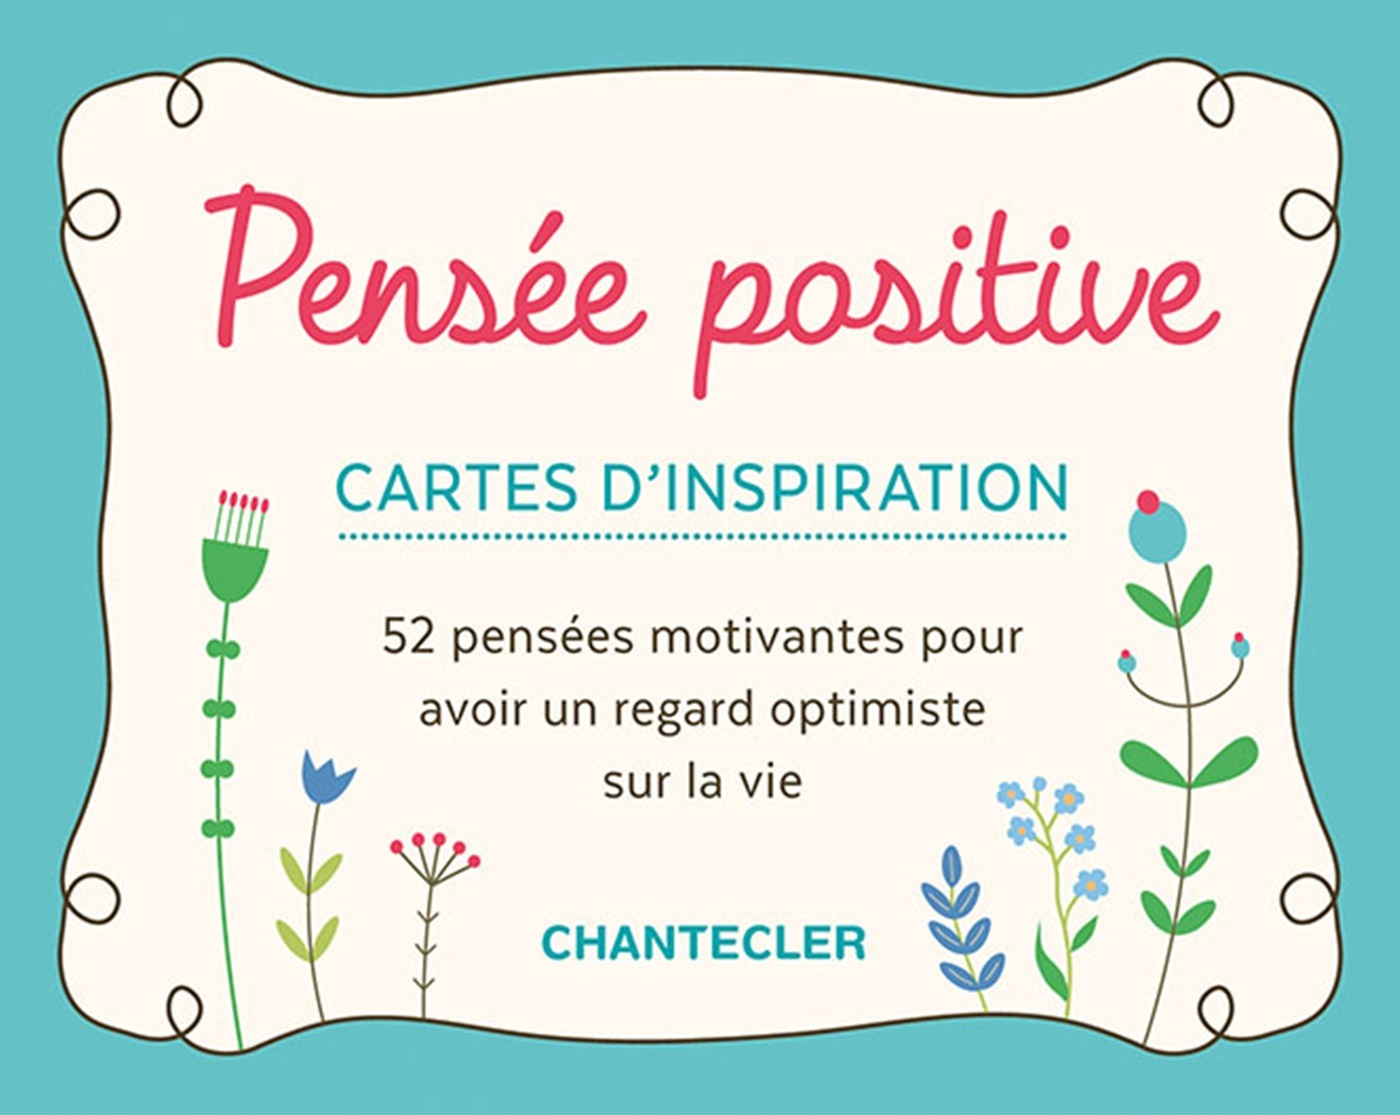 PENSEE POSITIVE - CARTES D'INSPIRATION